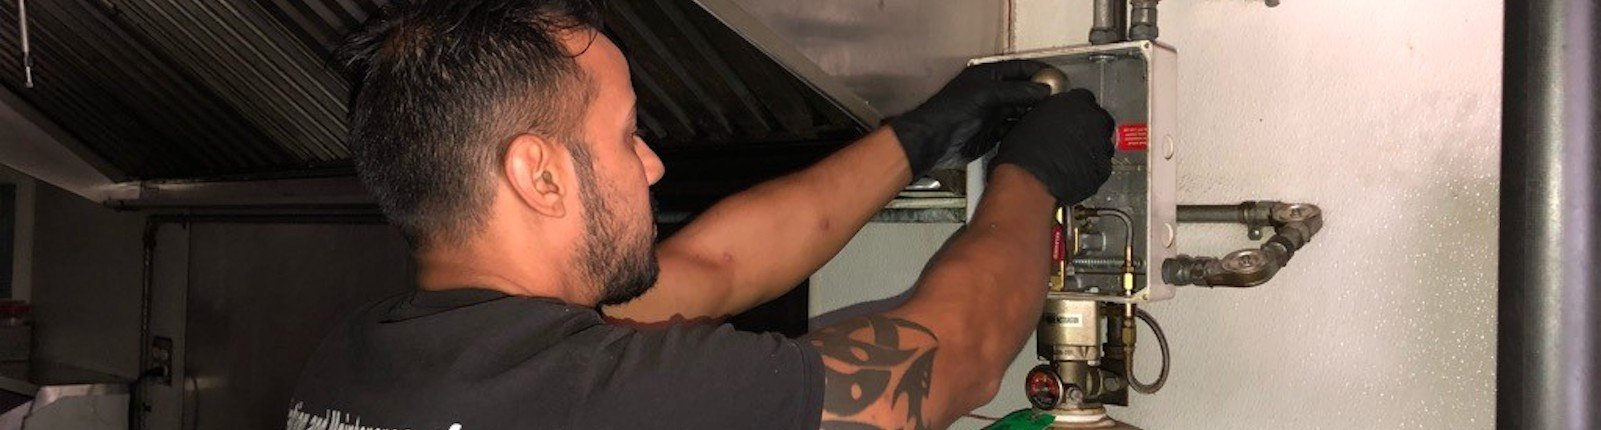 Close up of man inspecting a food truck